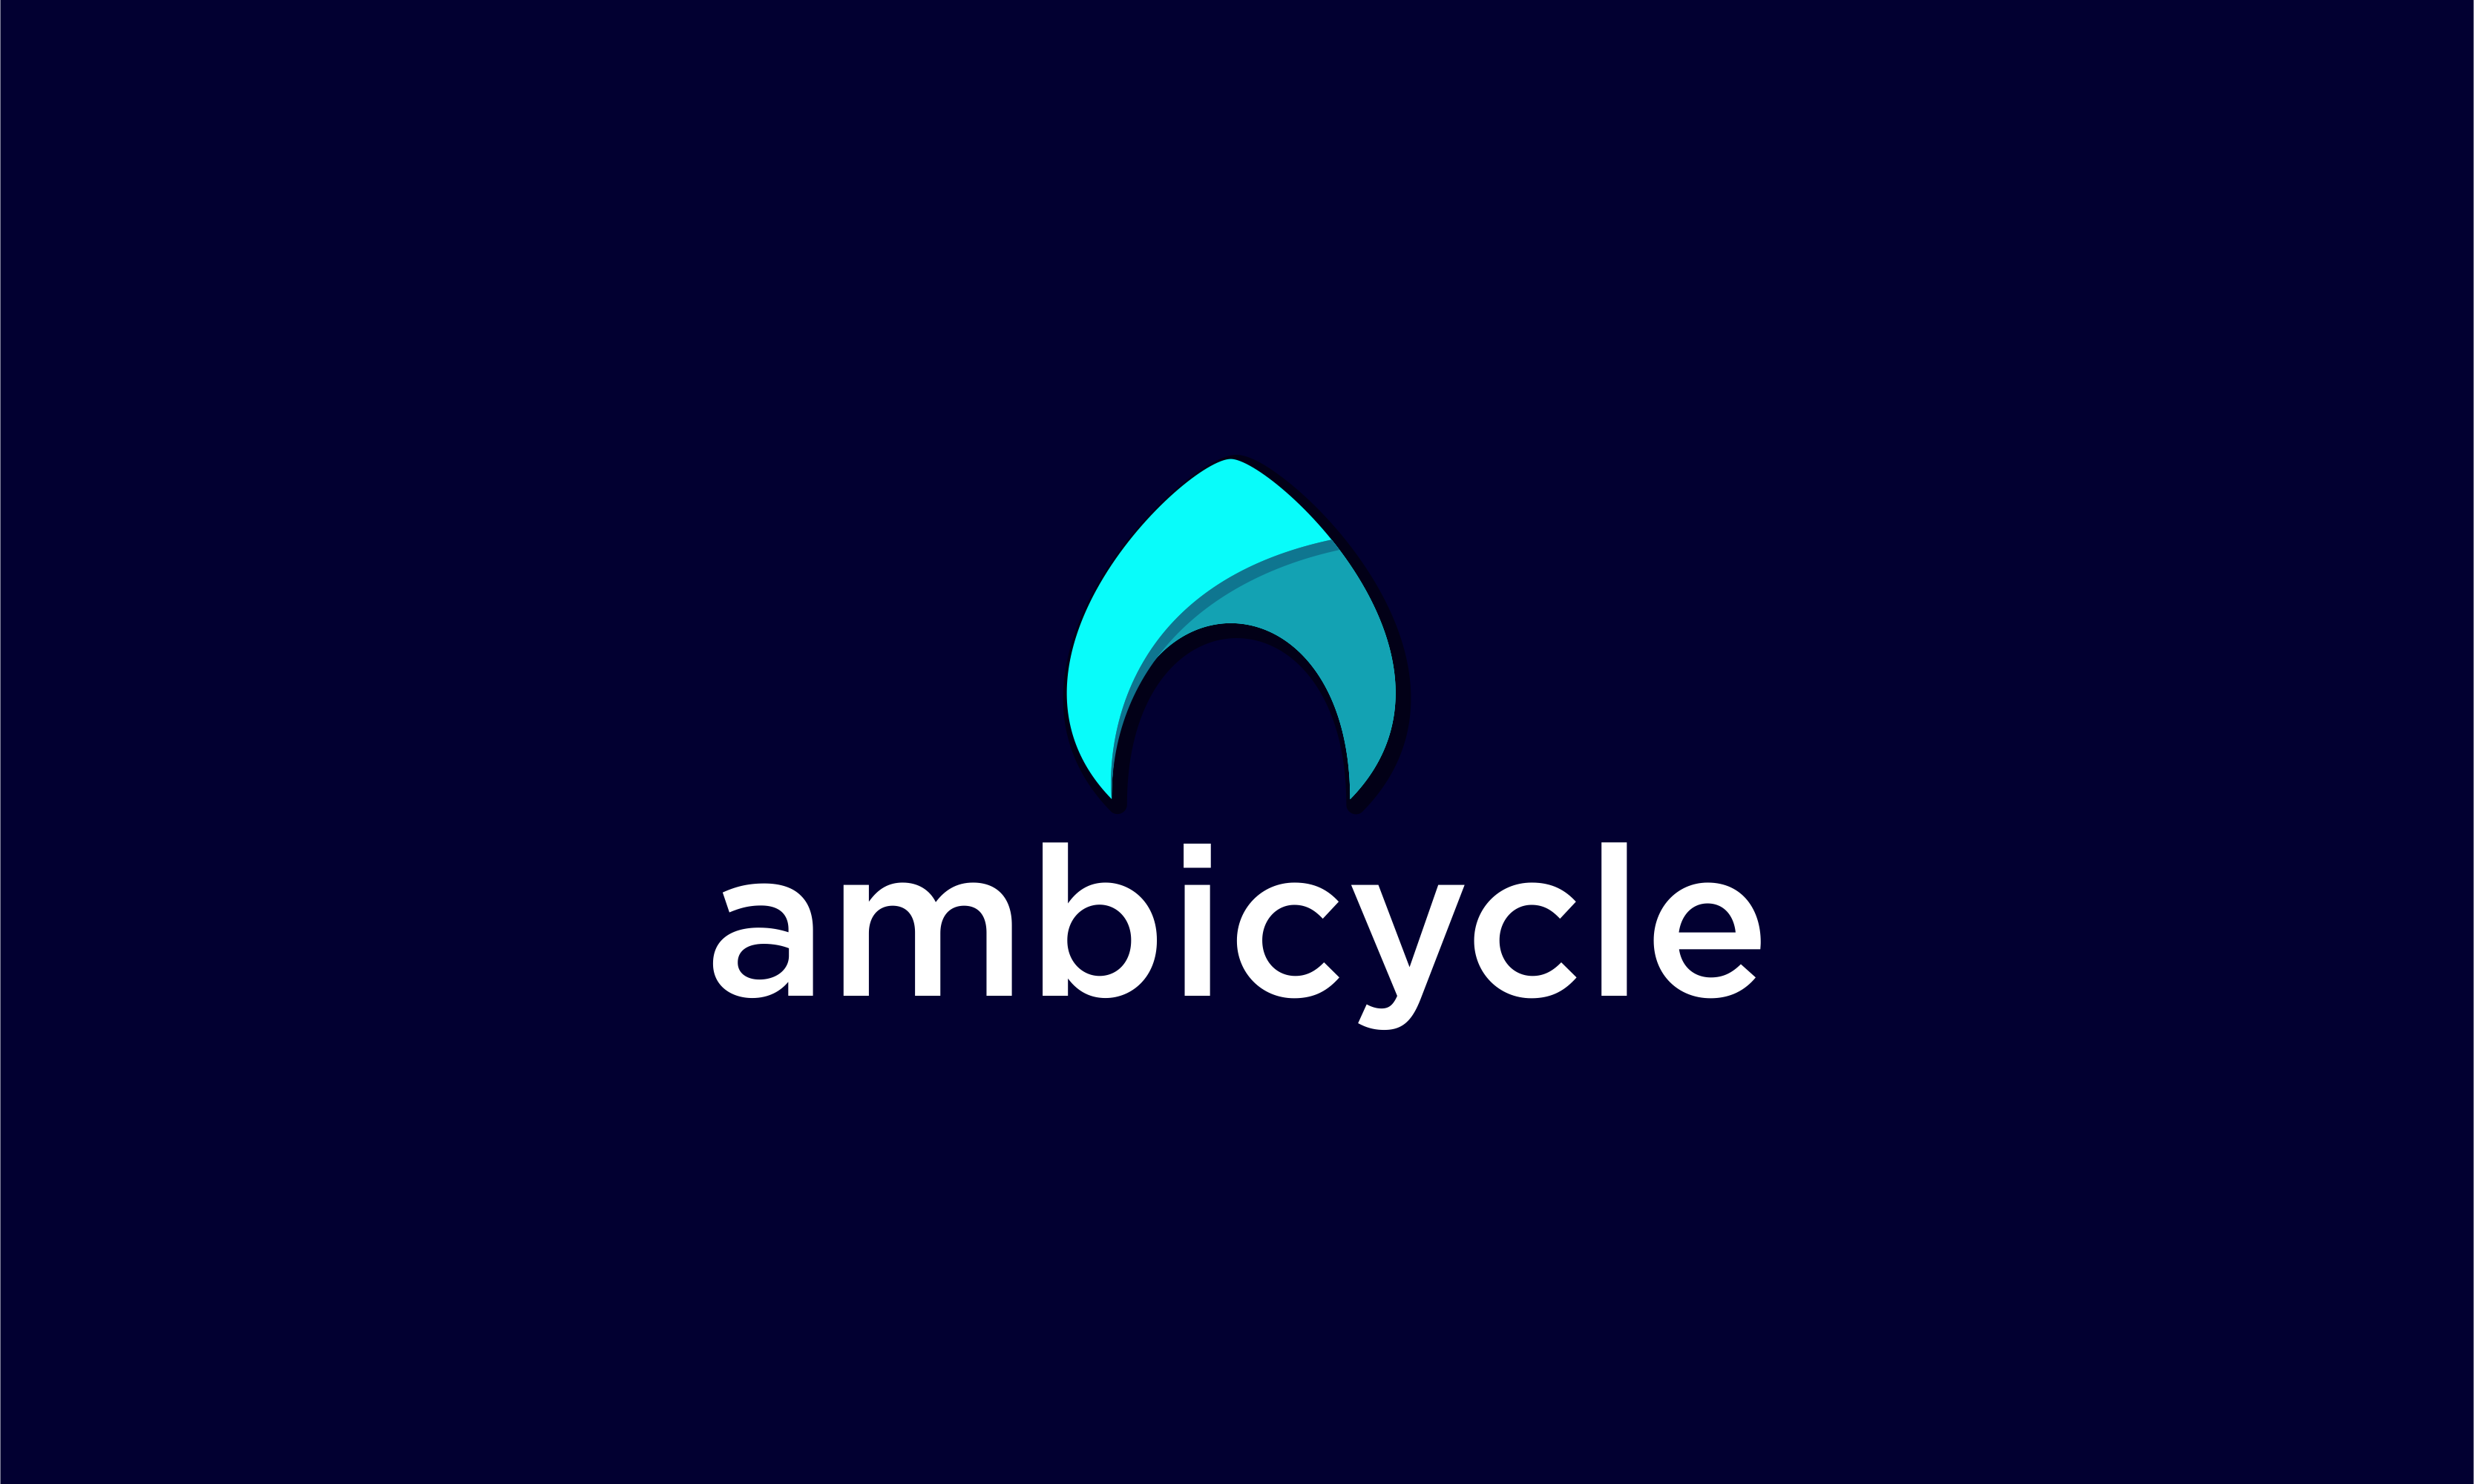 Ambicycle - Consumer goods brand name for sale